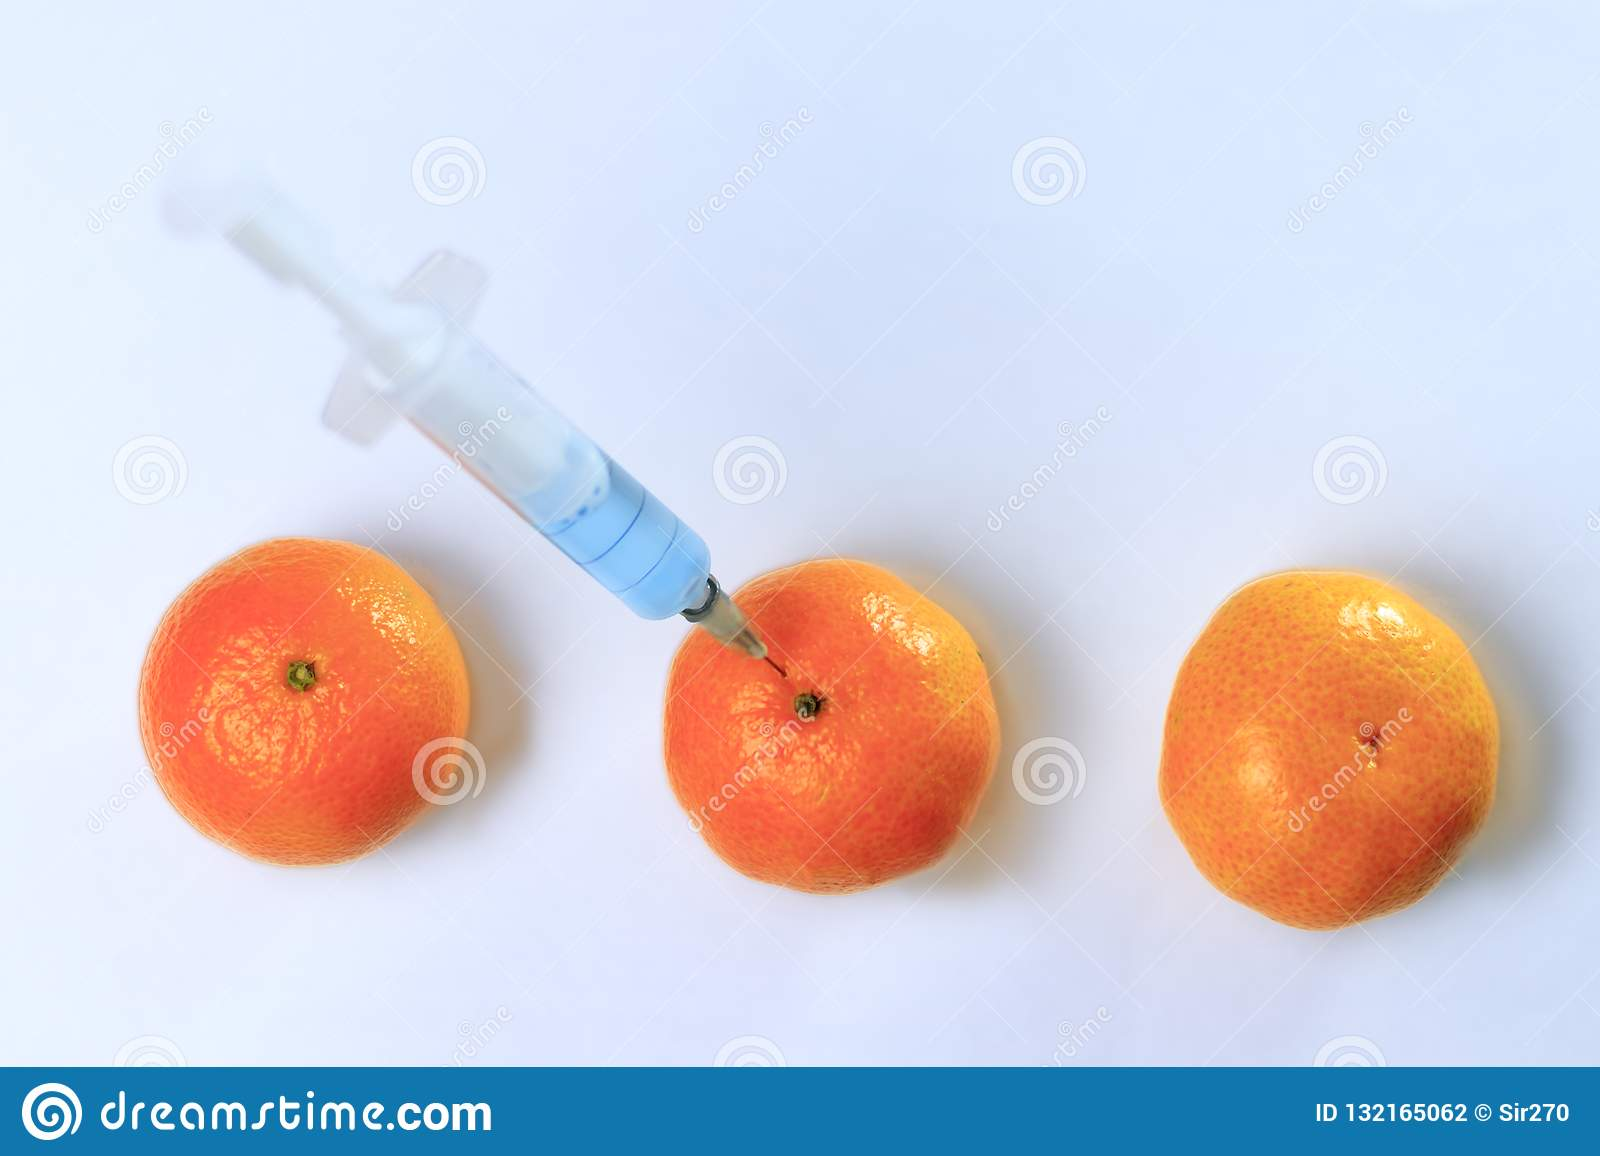 Added mandarin with a syringe. The background is white but not isolate, in the syringe is blue liquid. Chemical experiments in the